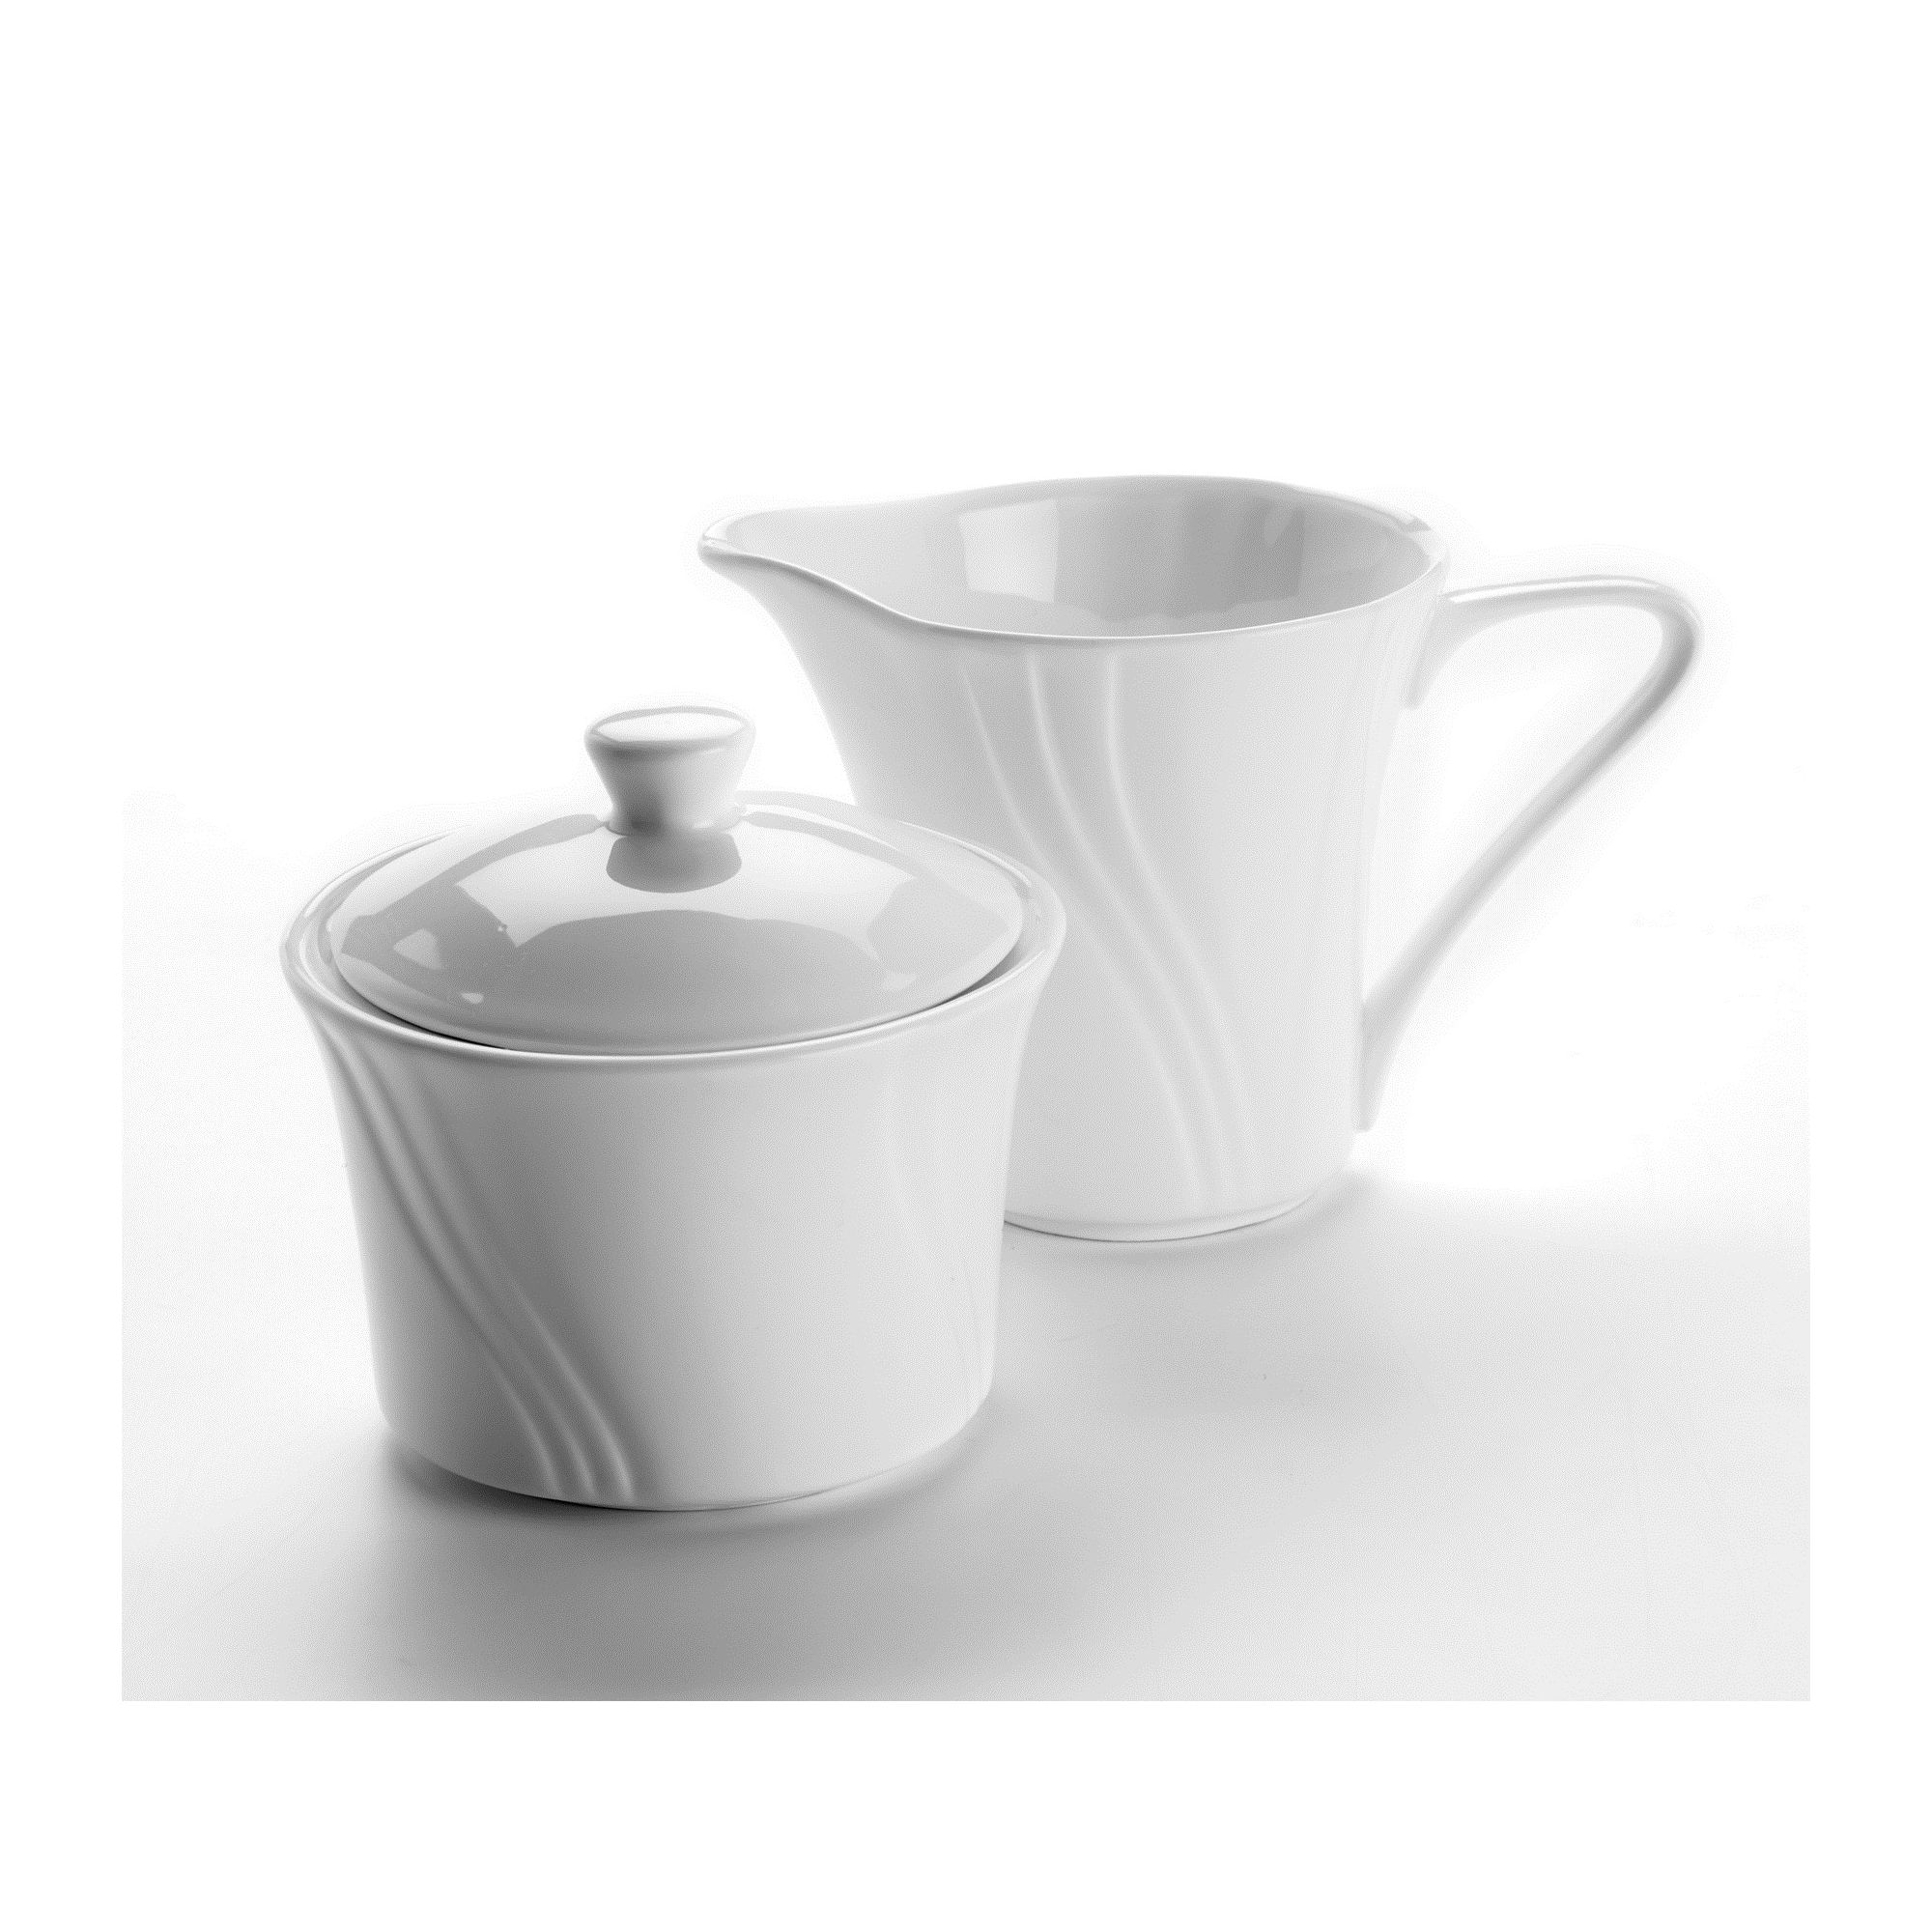 Other Domestic by Maser Molina Porcelain Sugar Bowl and Milk Jug in Ivory (Set of 2)